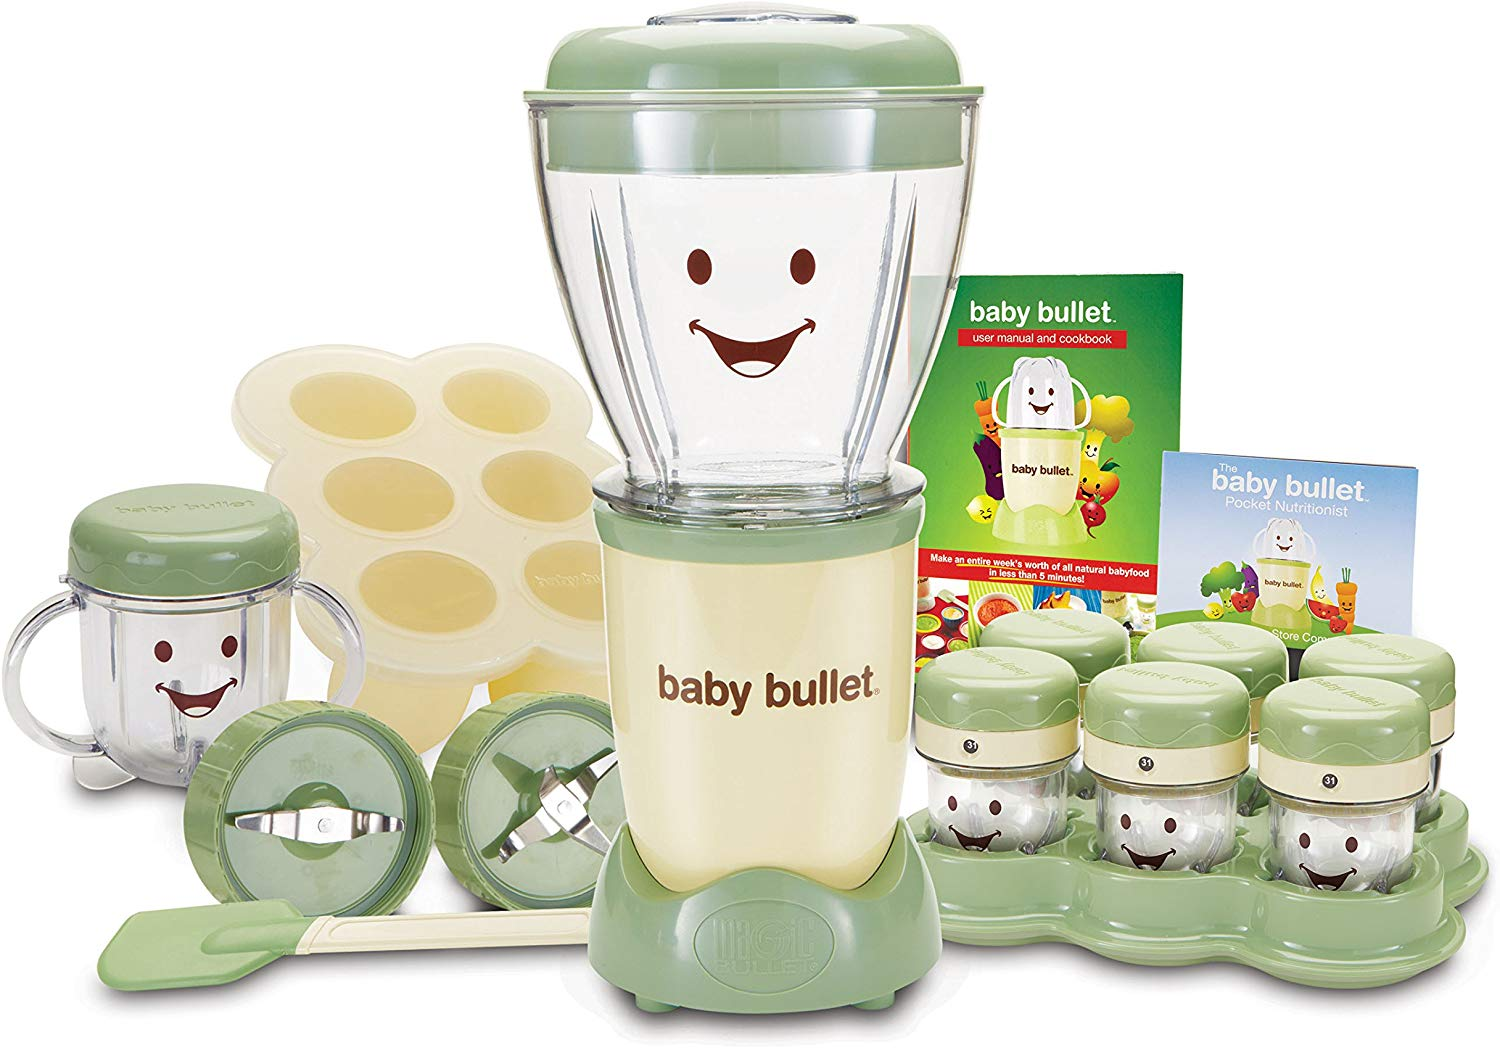 Baby Food Care System by Baby Bullet